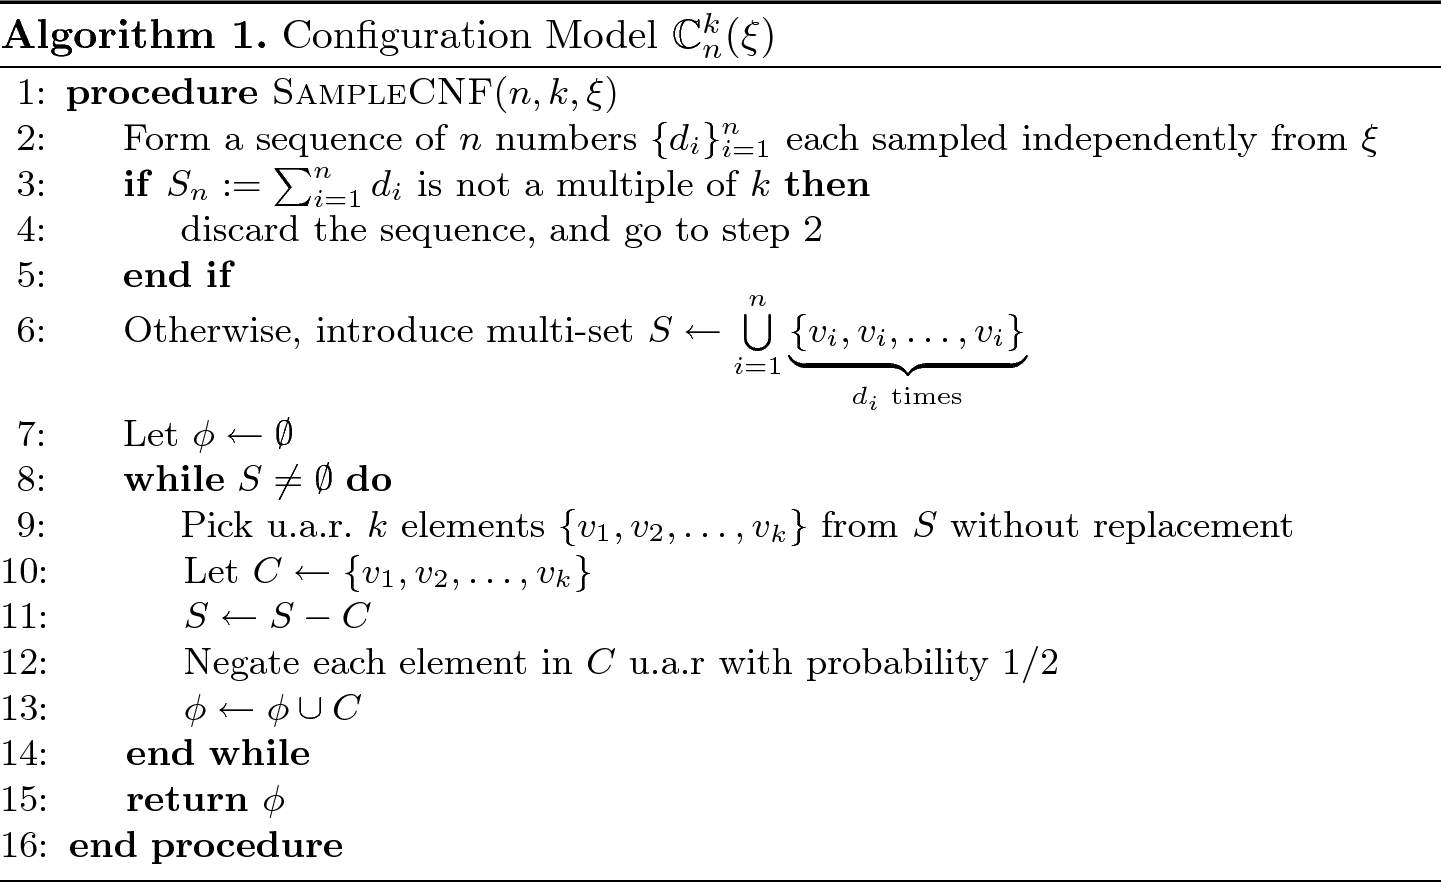 Satisfiability Threshold for Power Law Random 2-SAT in Configuration